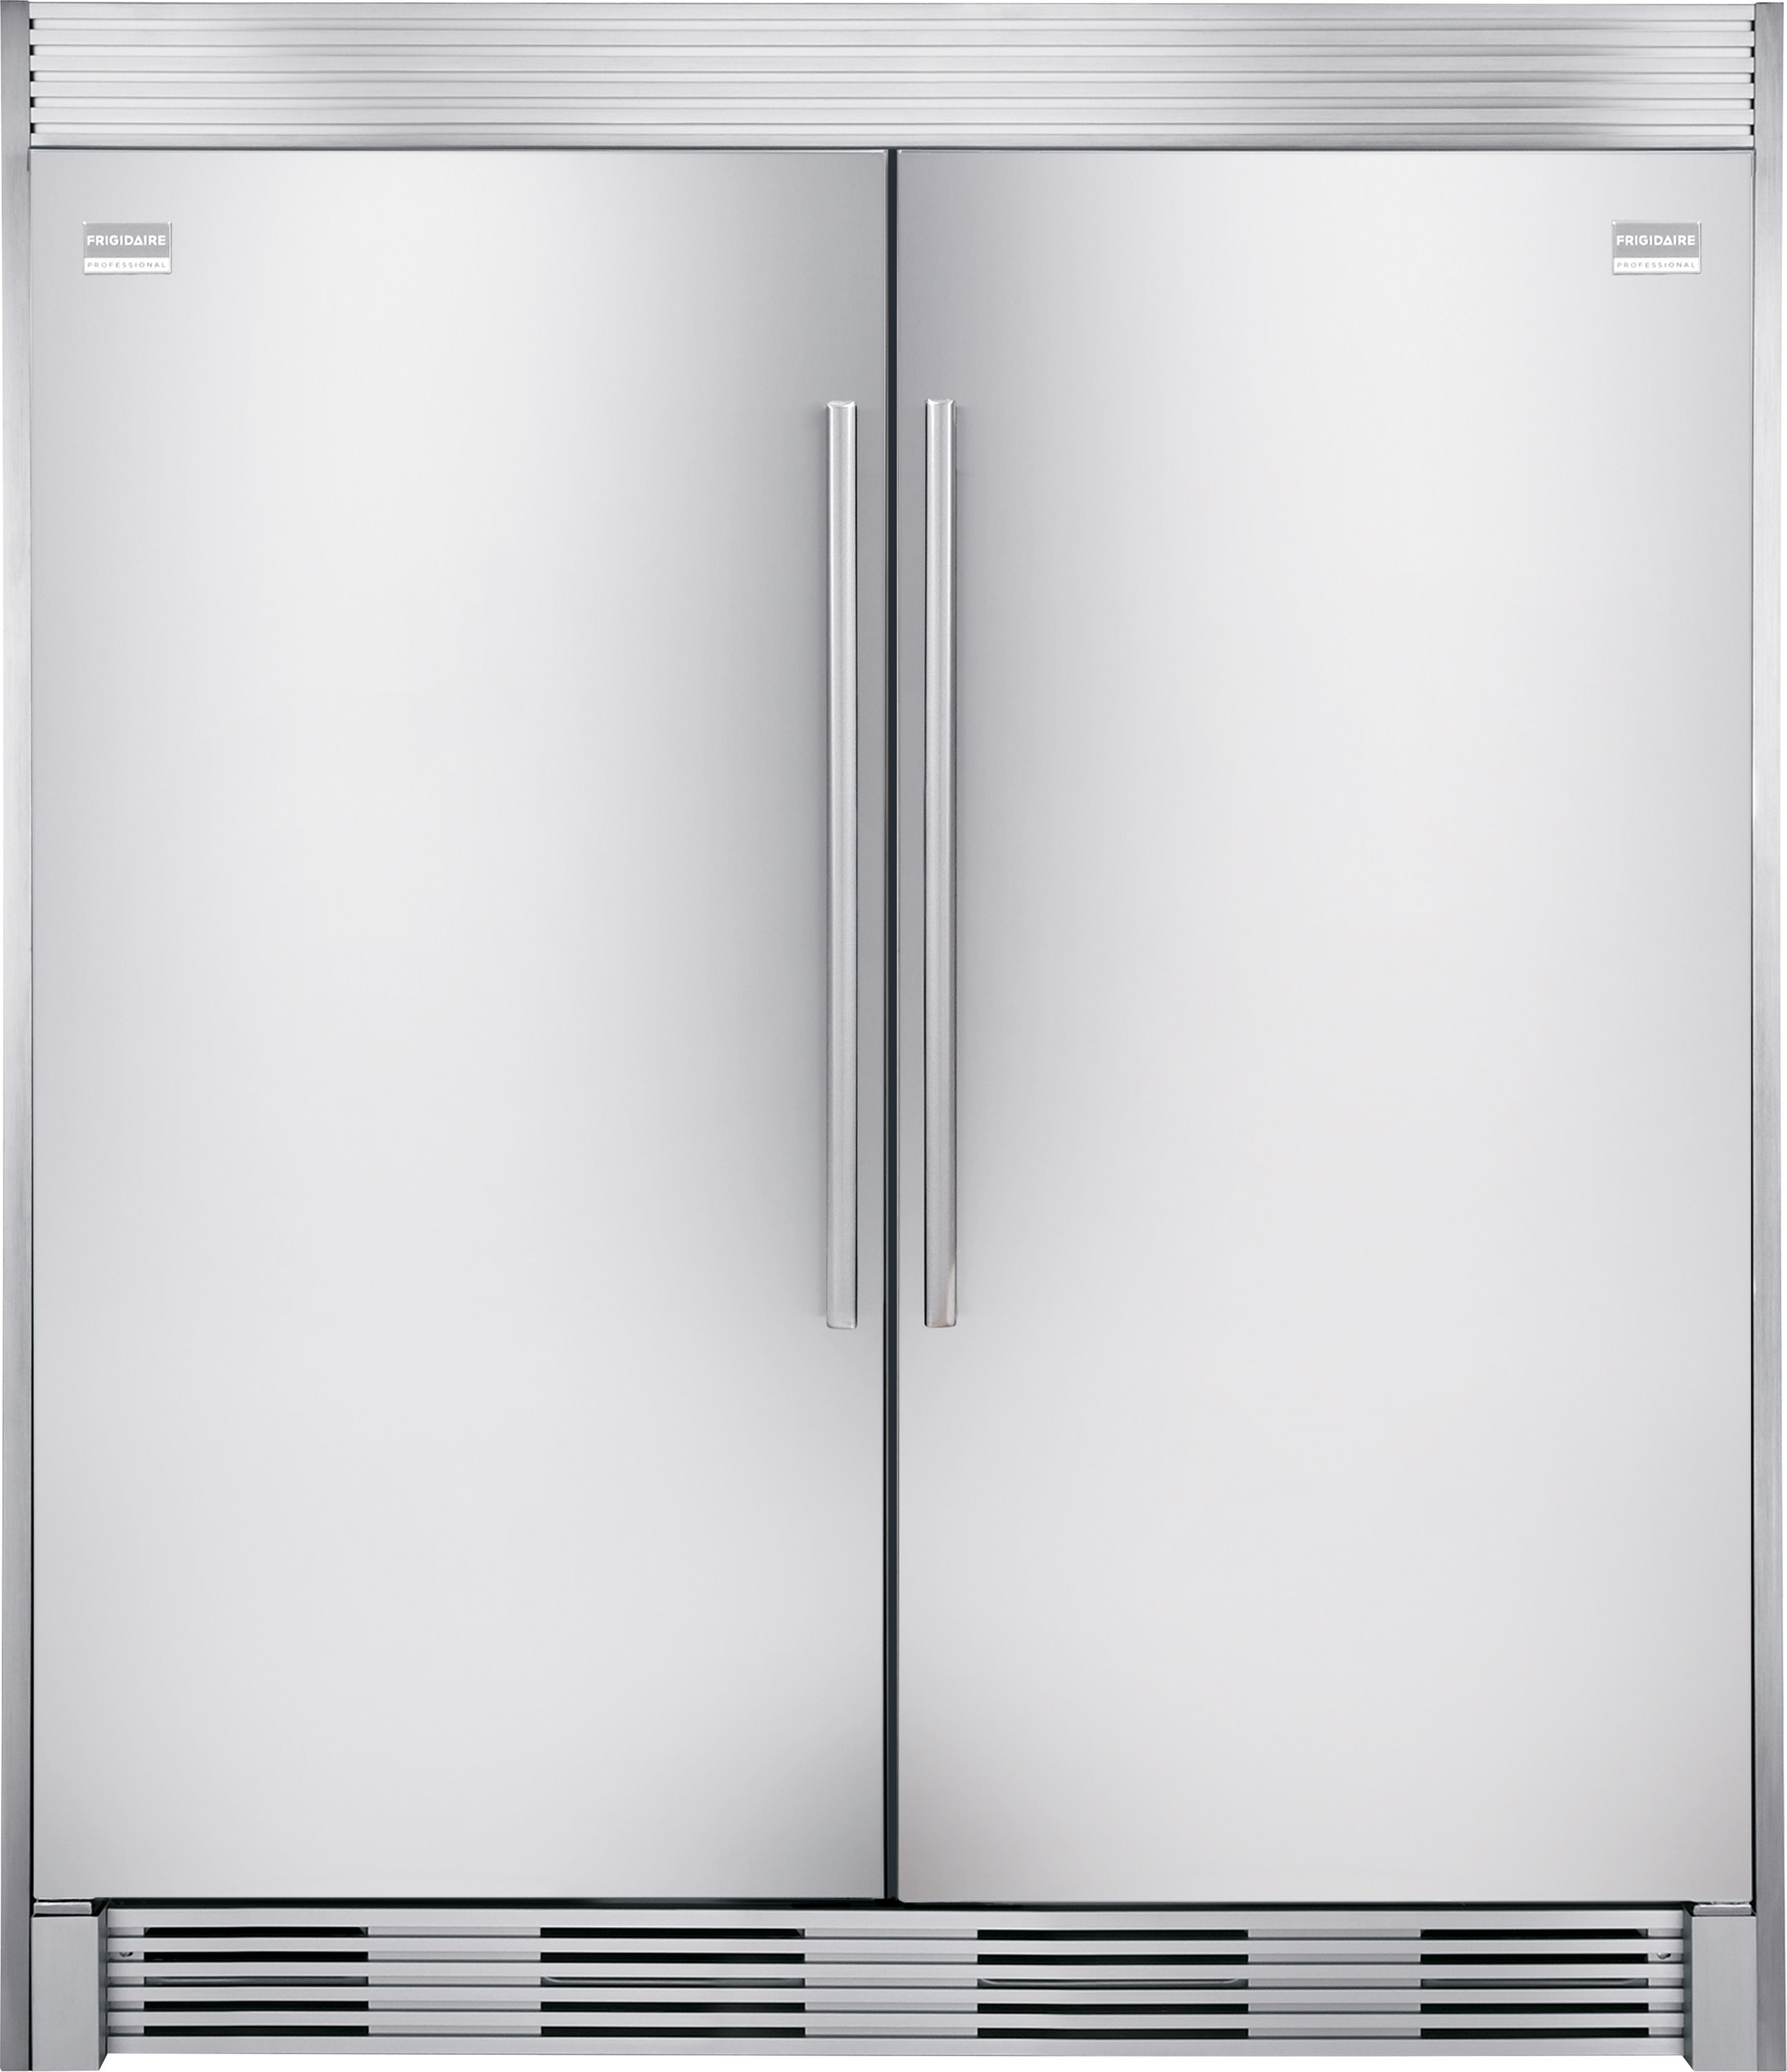 Frigidaire Professional Series 18.6 cu. ft. Upright Freezer - Stainless Steel